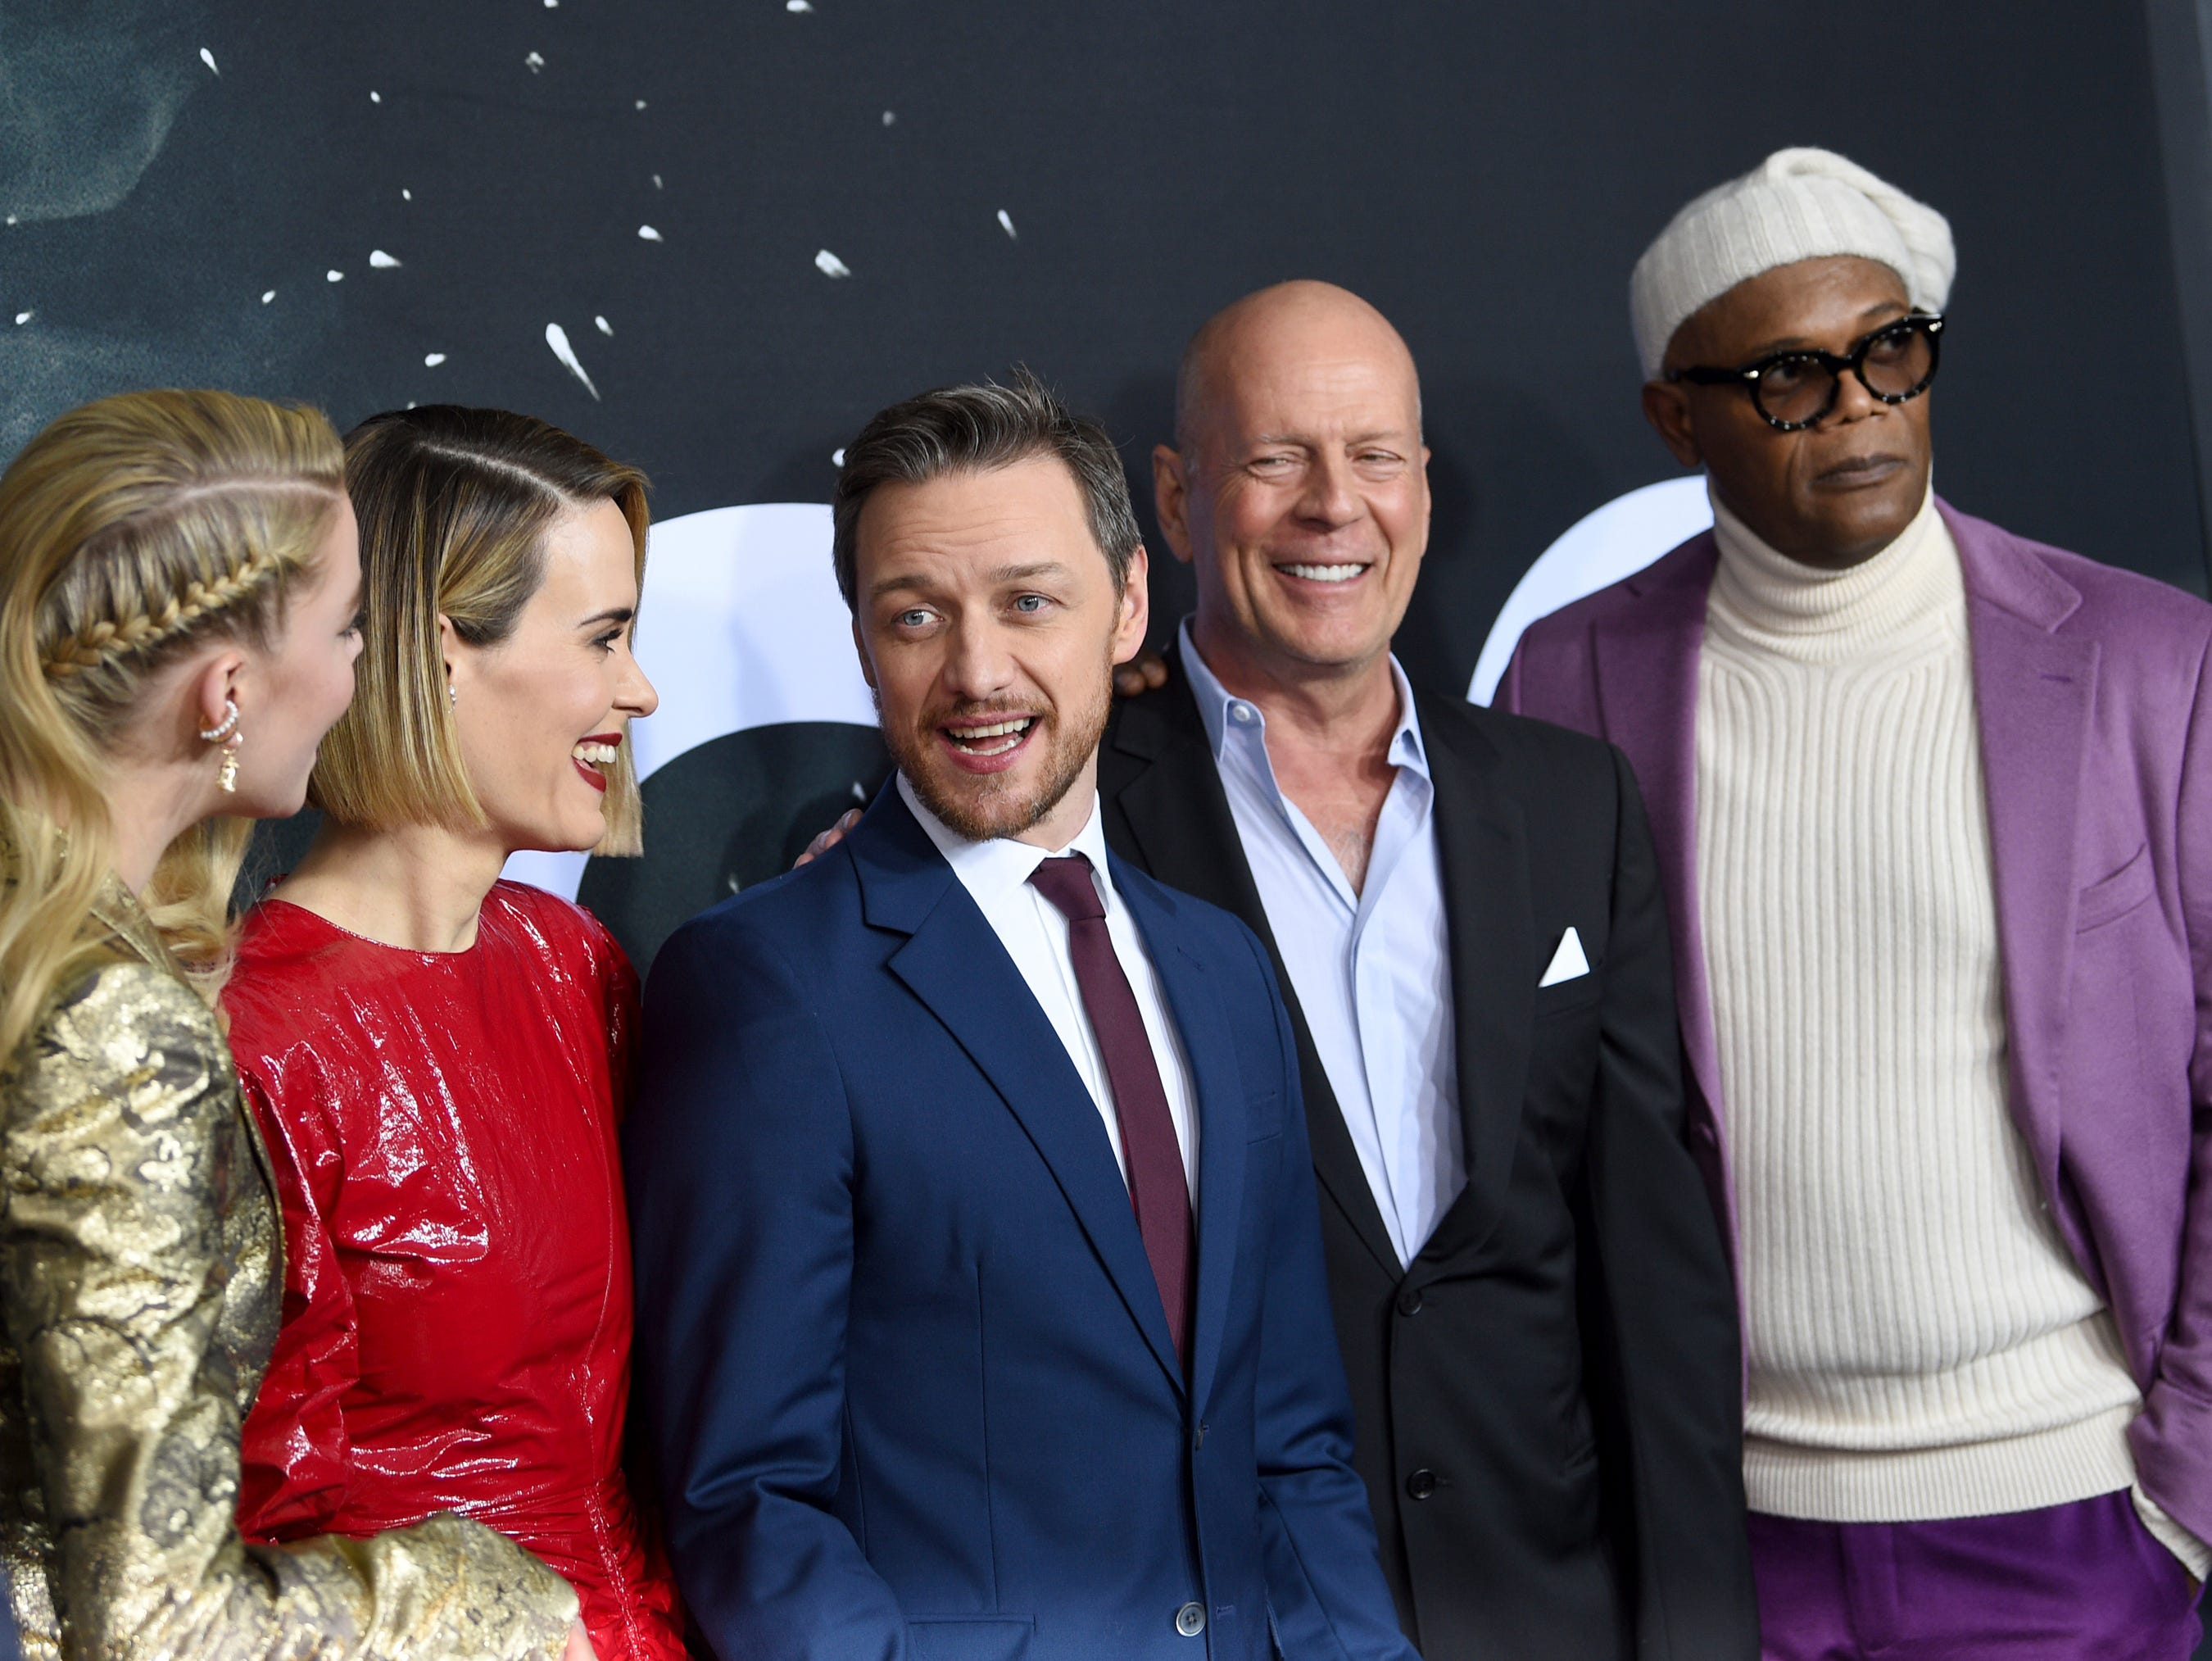 """Anya Taylor-Joy, from left, Sarah Paulson, James McAvoy, Bruce Willis and Samuel L. Jackson attend the premiere of """"Glass"""" at the SVA Theatre on Tuesday, Jan. 15, 2019, in New York."""